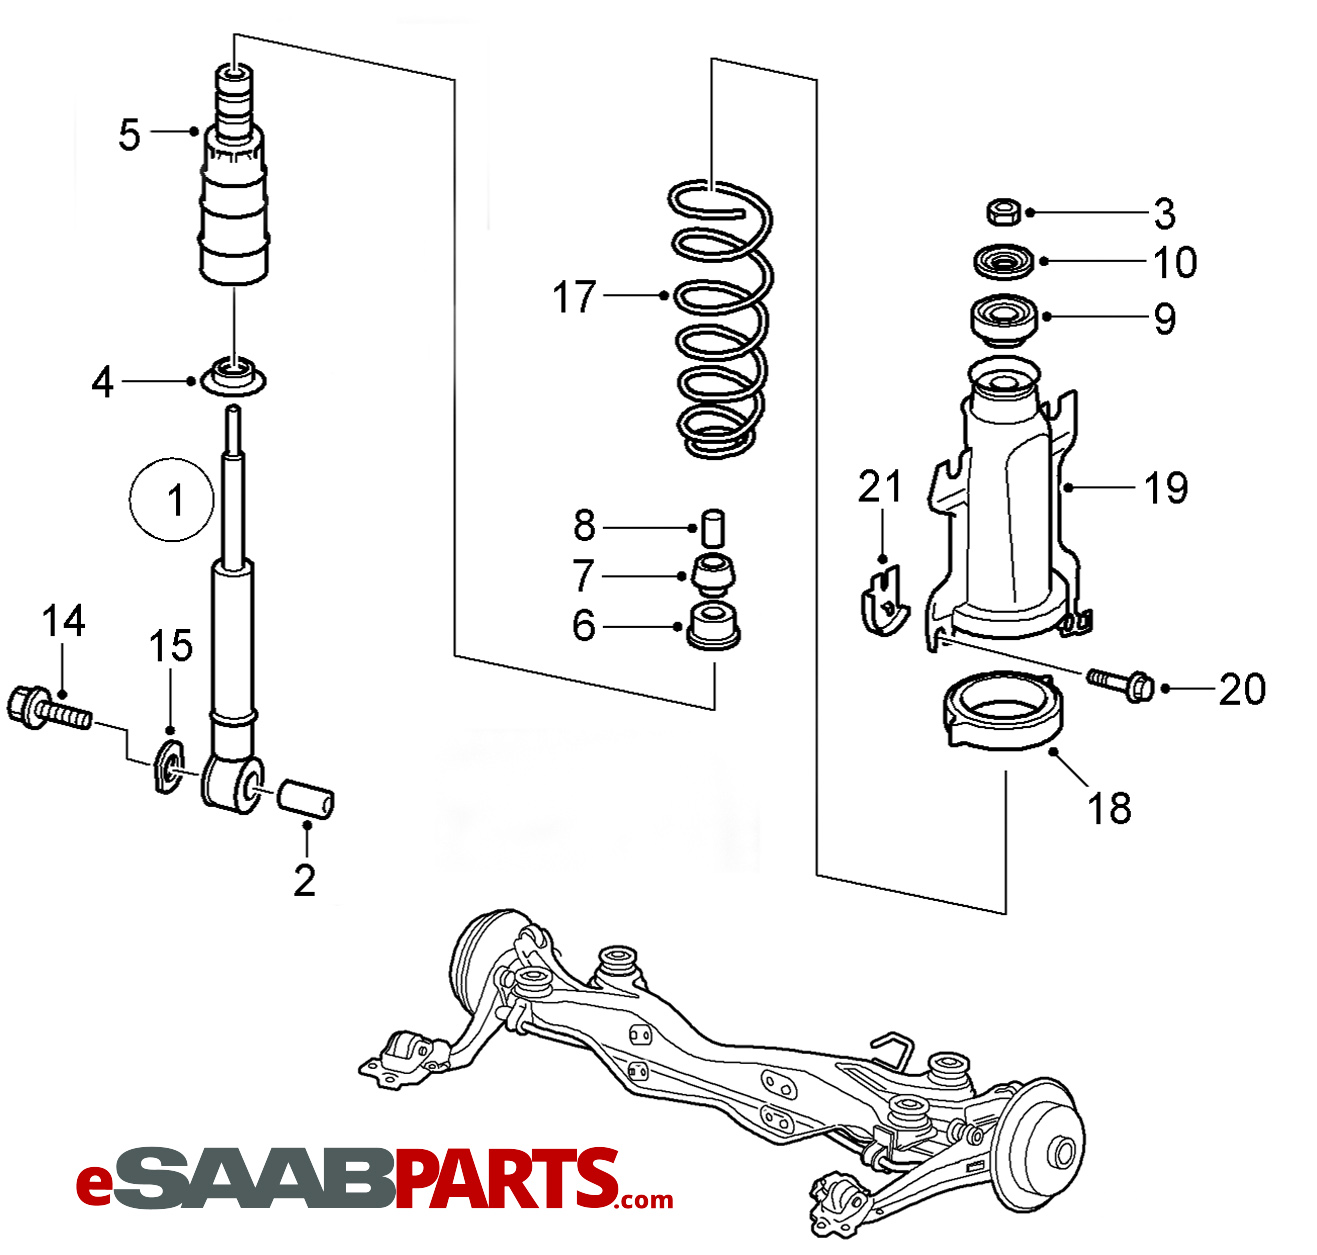 2000 Saab 9 3 Engine Diagram